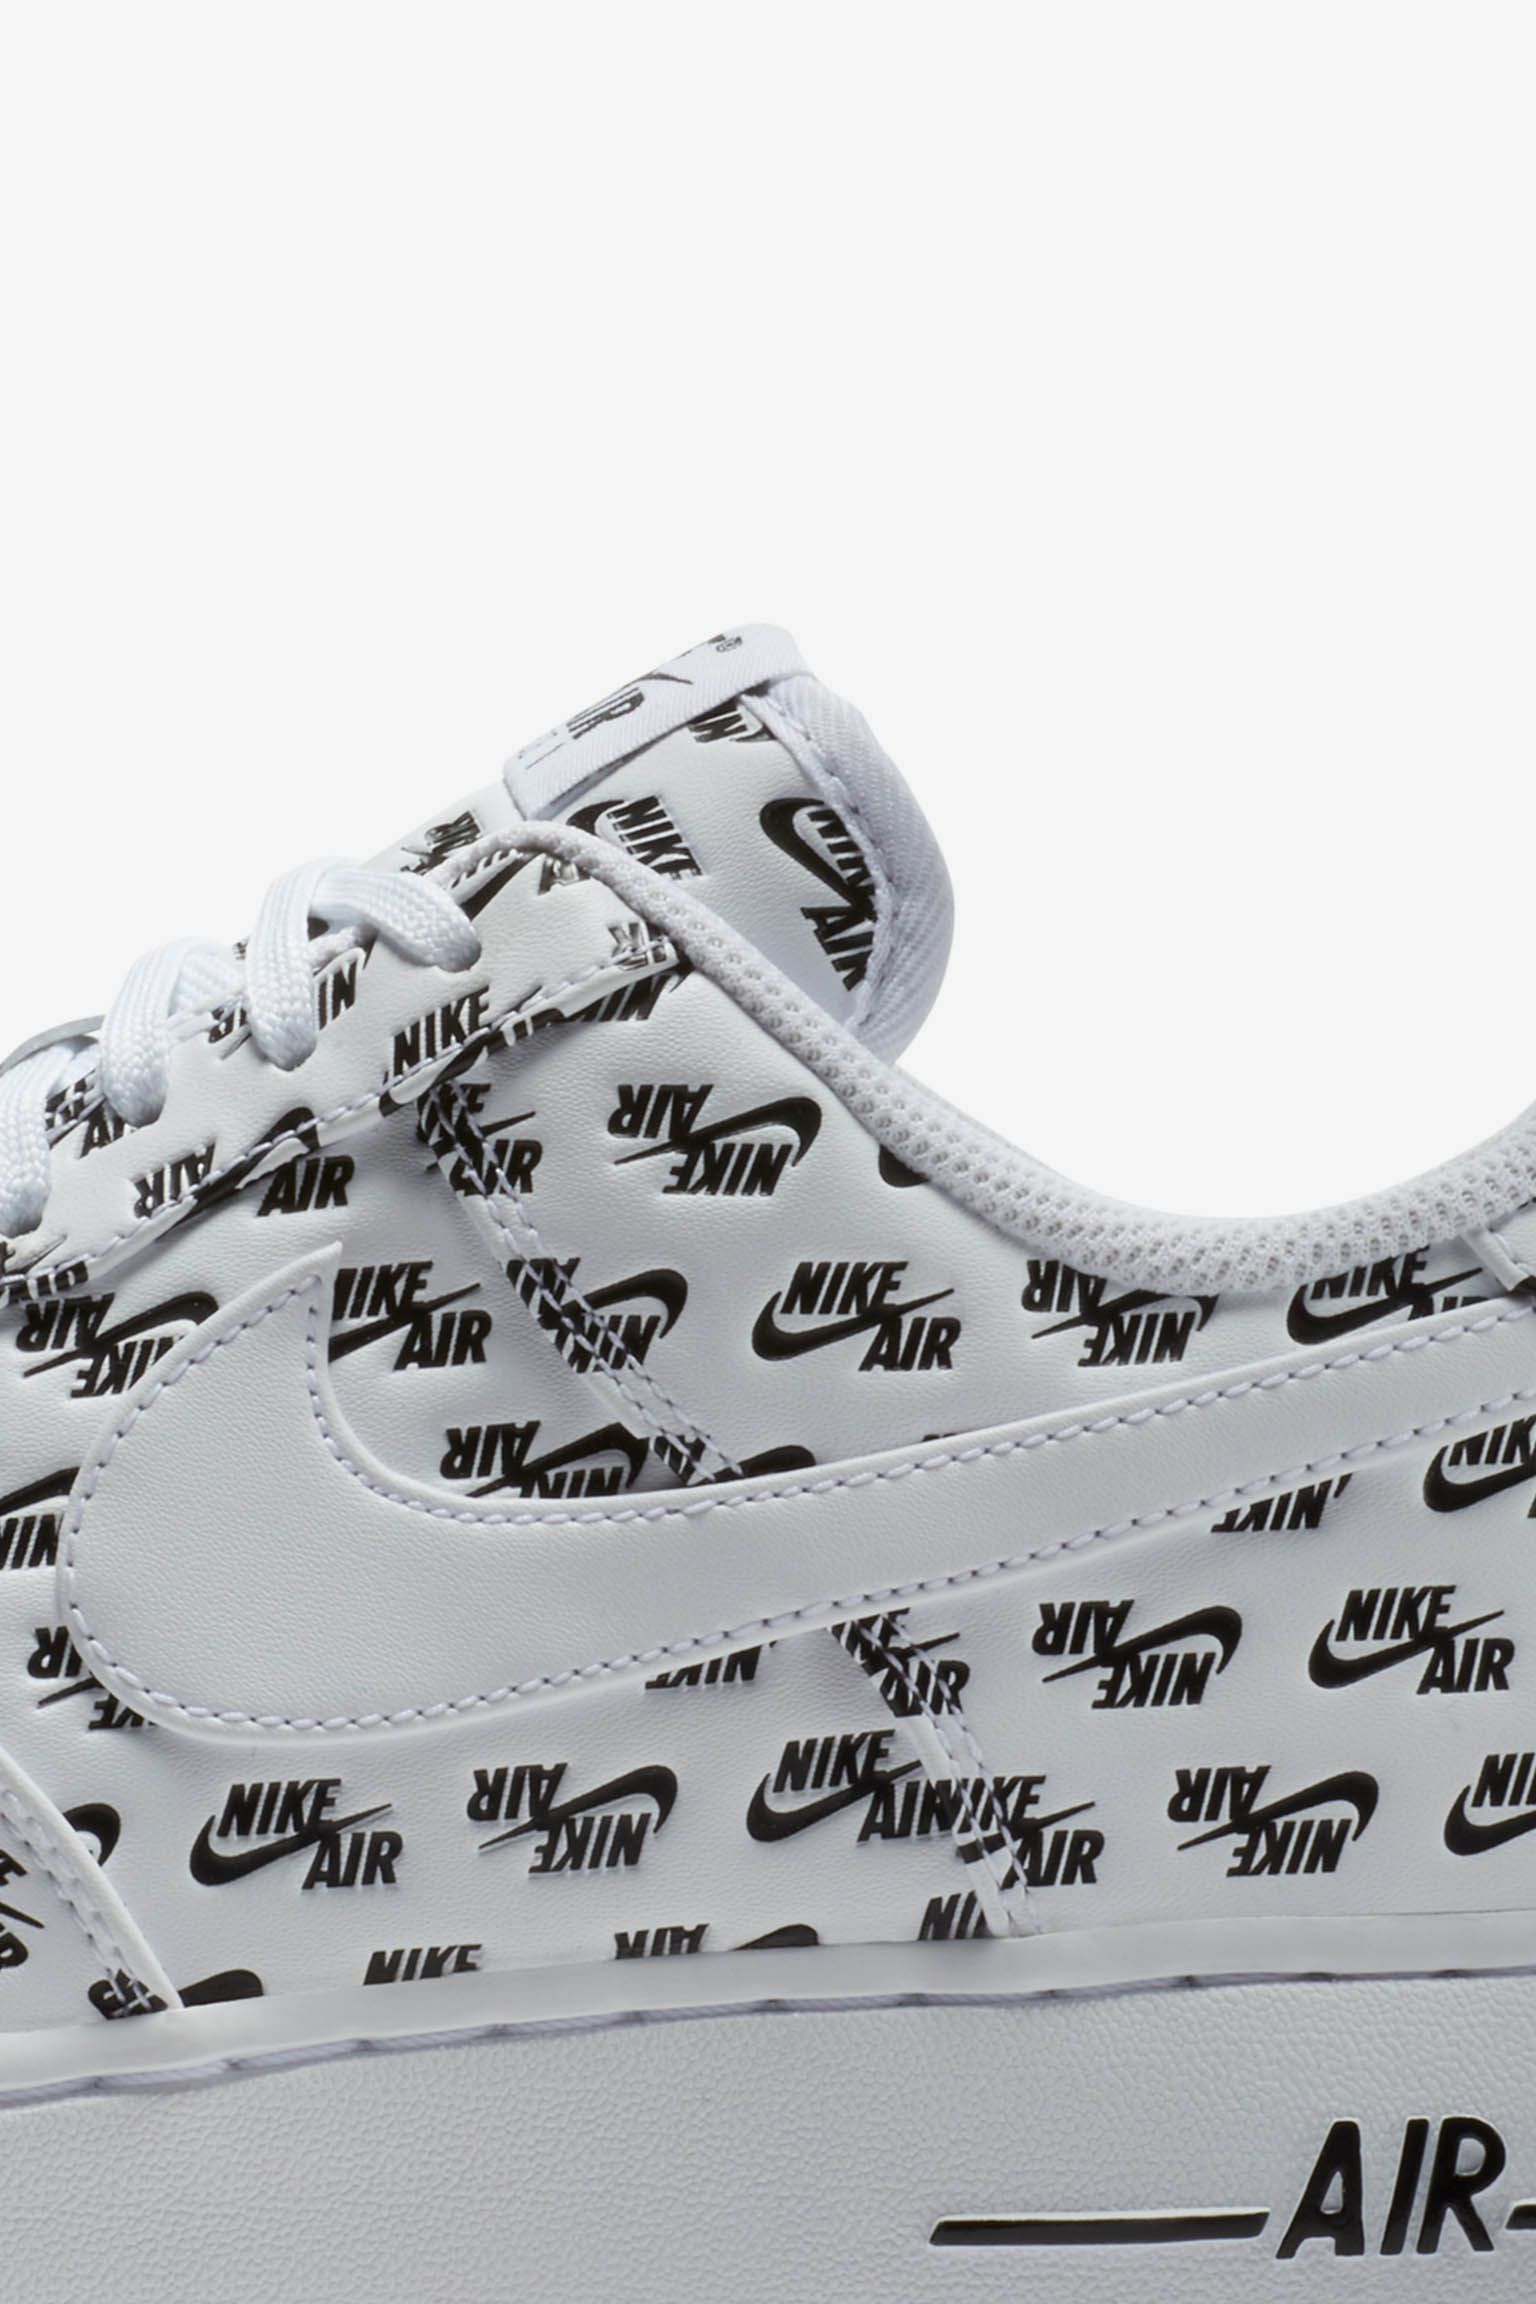 Nike Air Force 1 07' 'White & Black' Release Date